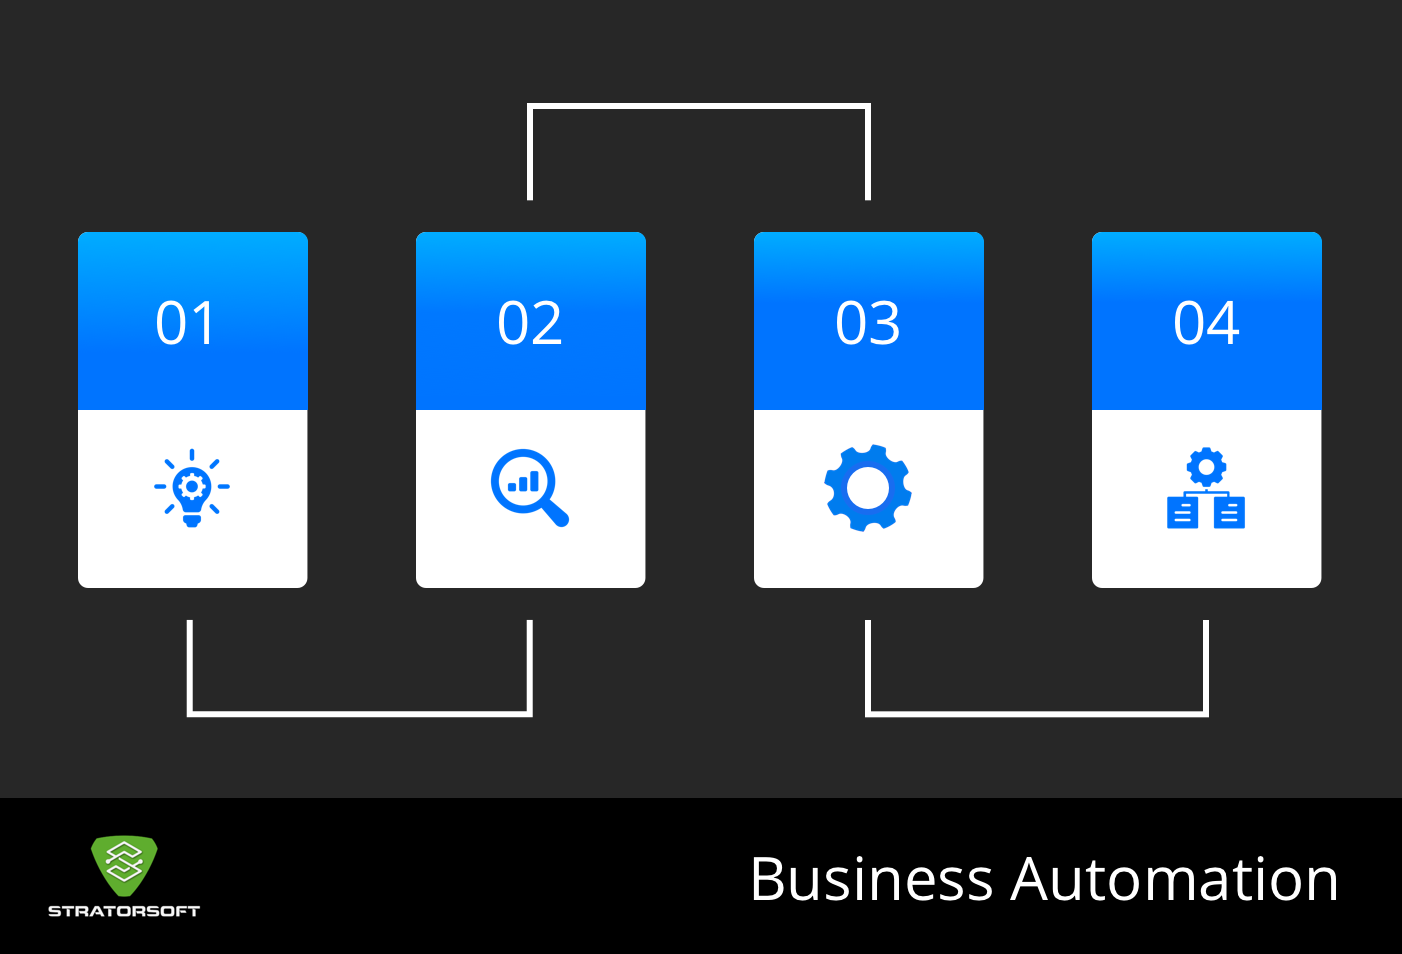 Business Automation in 4 Steps Graphic